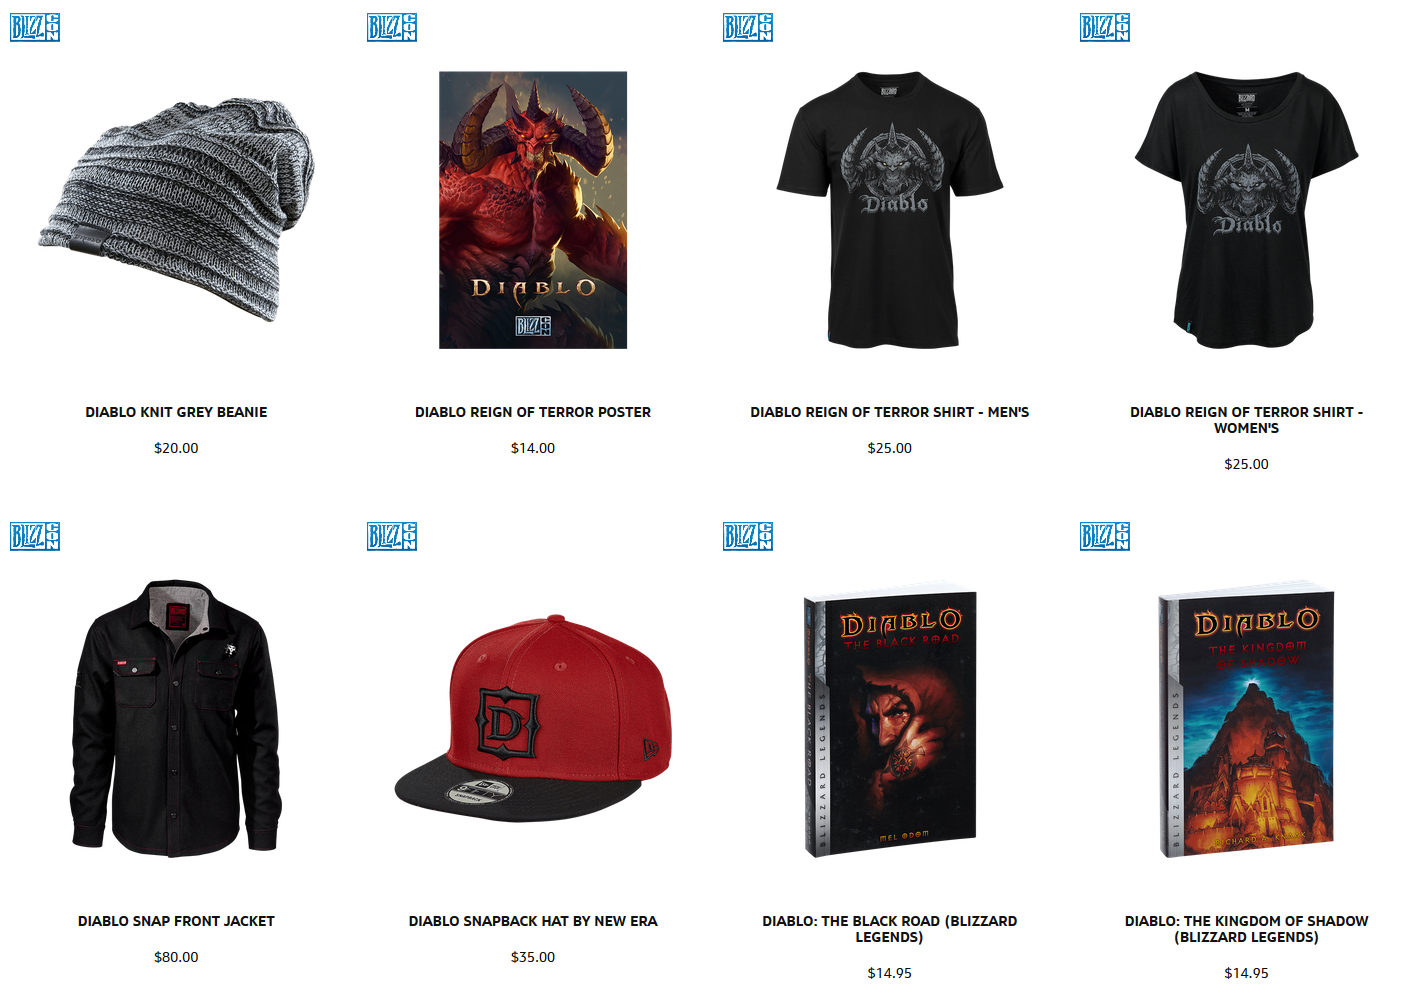 BlizzCon Merch Store May Have Leaked New Diablo Title